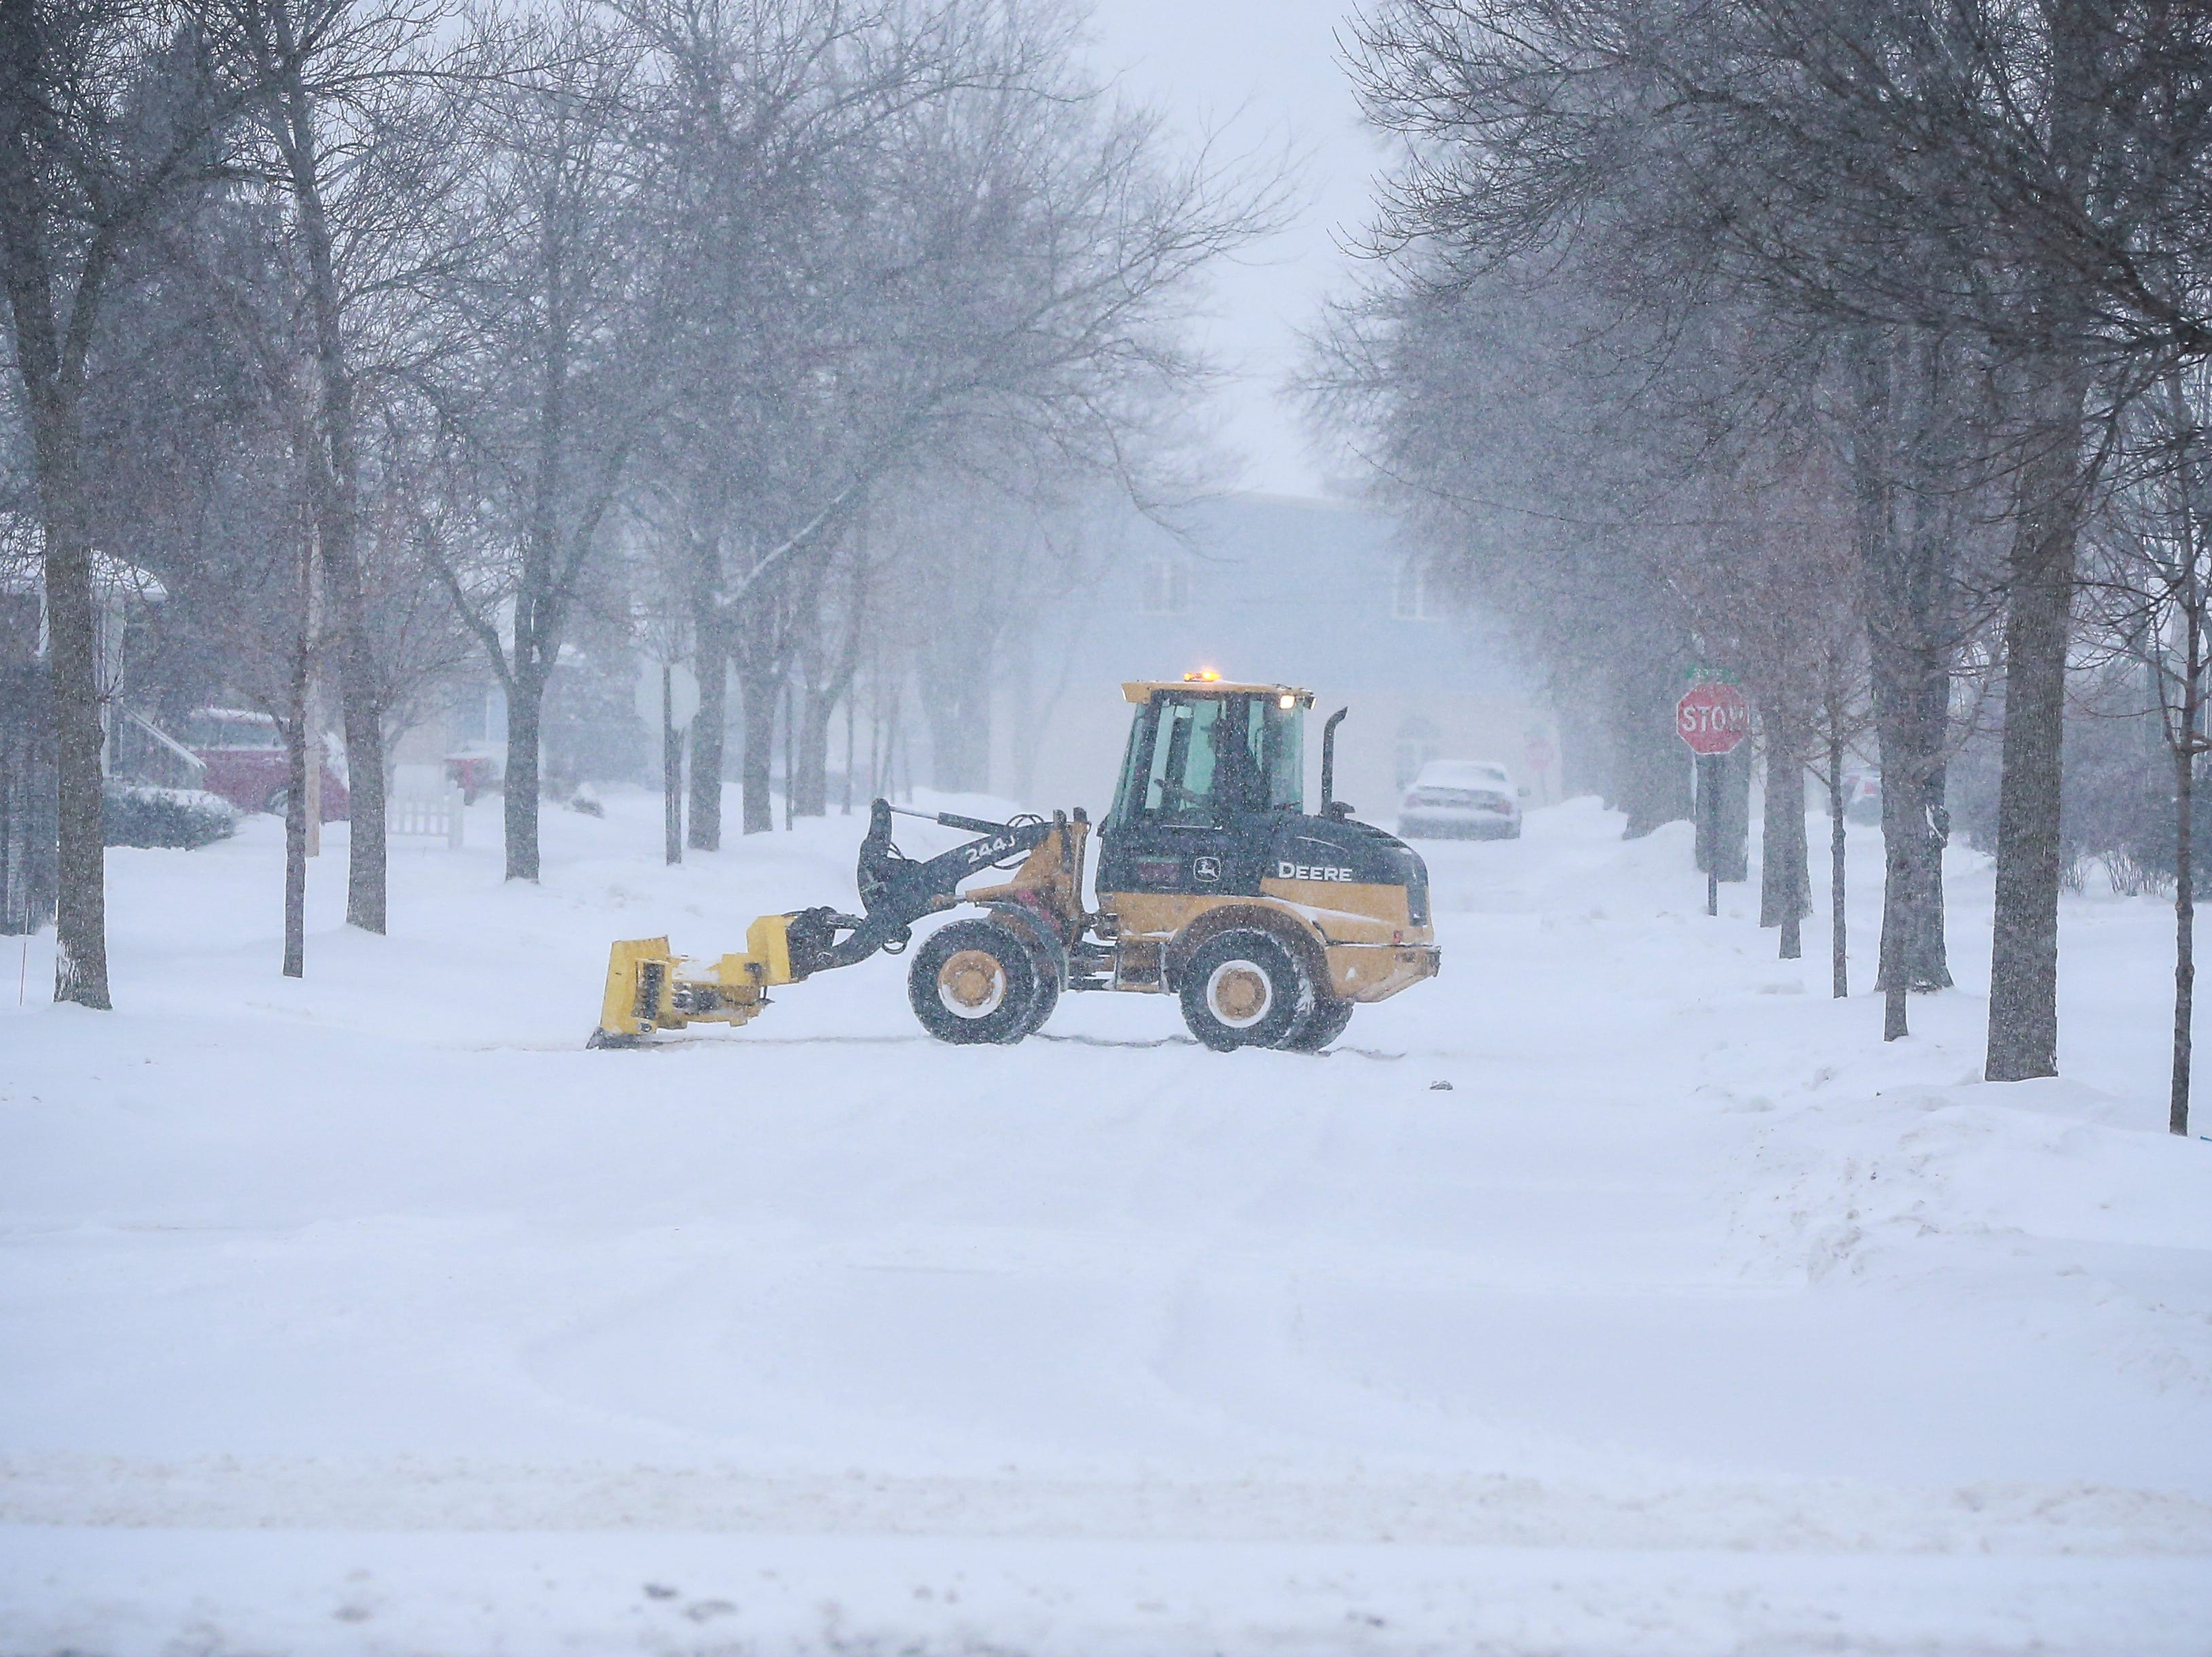 A construction vehicle clears snow on a property after a snowstorm Monday, Jan. 28, 2019, in Wausau, Wis.